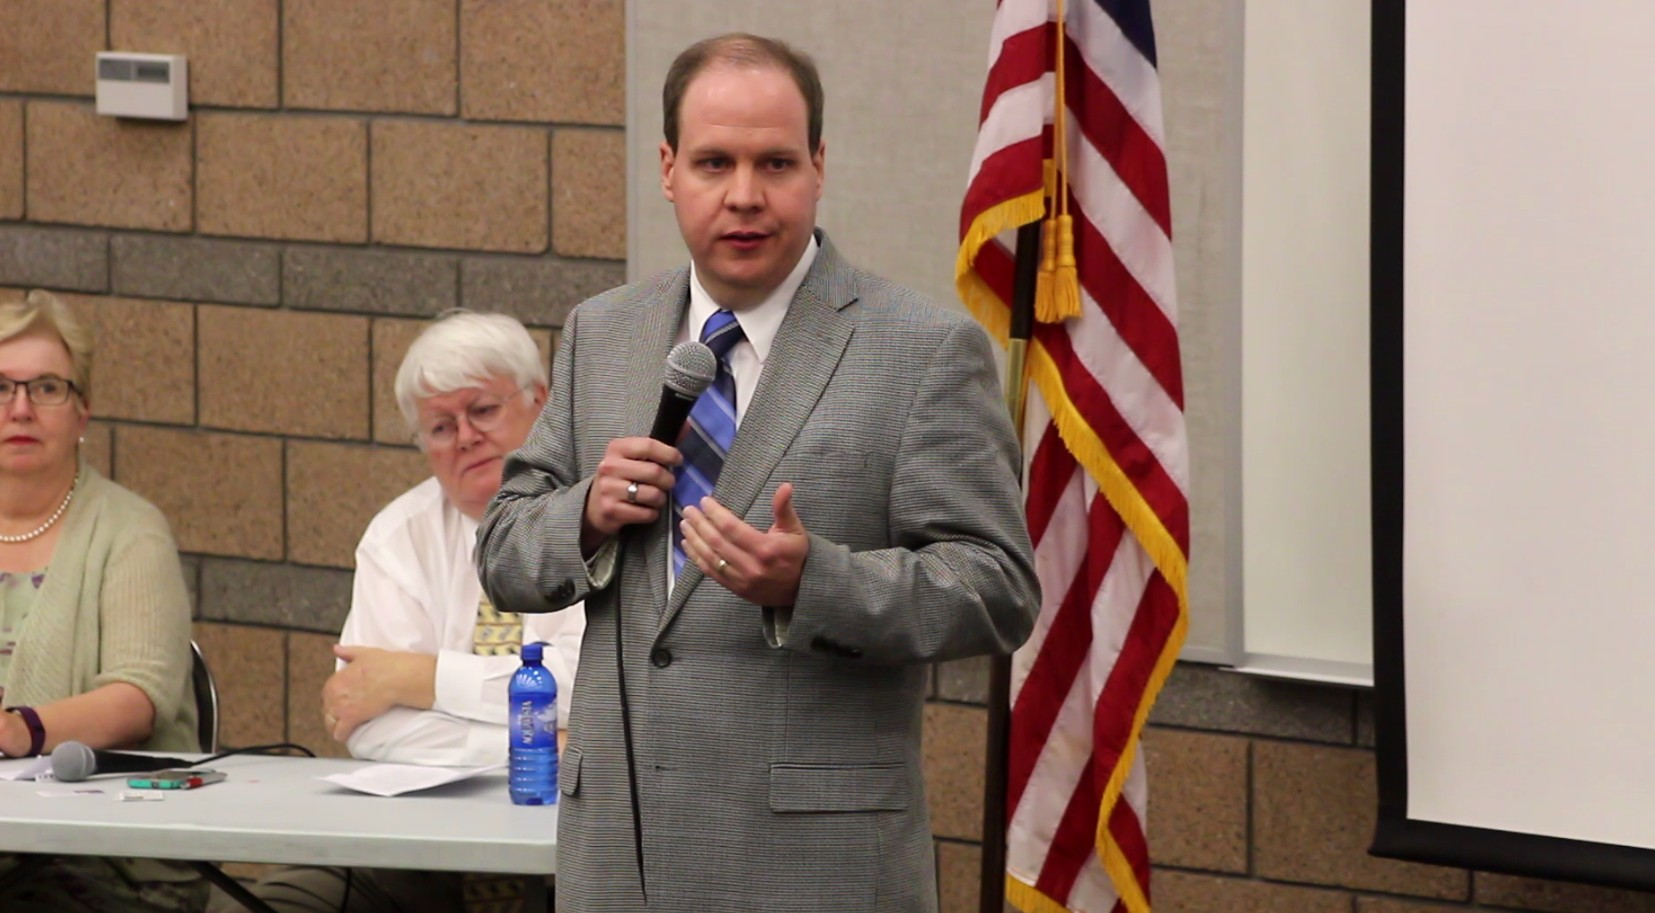 Jonathan Swinton at Tonaquint Intermediate School debating against Misty K. Snow. Both are seeking the Democratic nomination for senate on the June 28 primary election, St. George, Utah, June 14, 2016 | Photo by Mori Kessler, St. George News